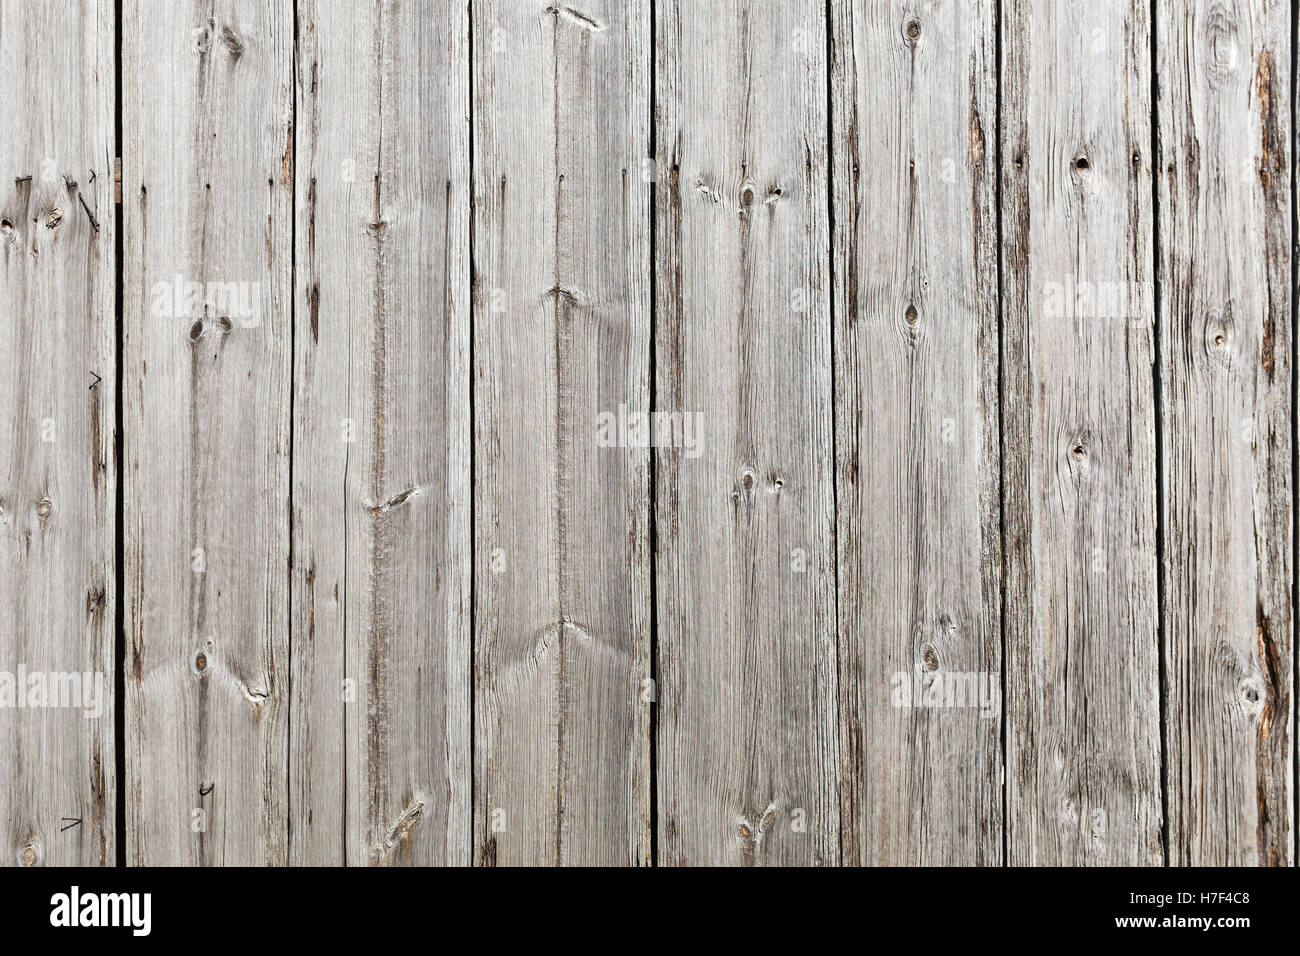 Wooden floor, grey color background, vertical lines, horizontal orientation - Stock Image